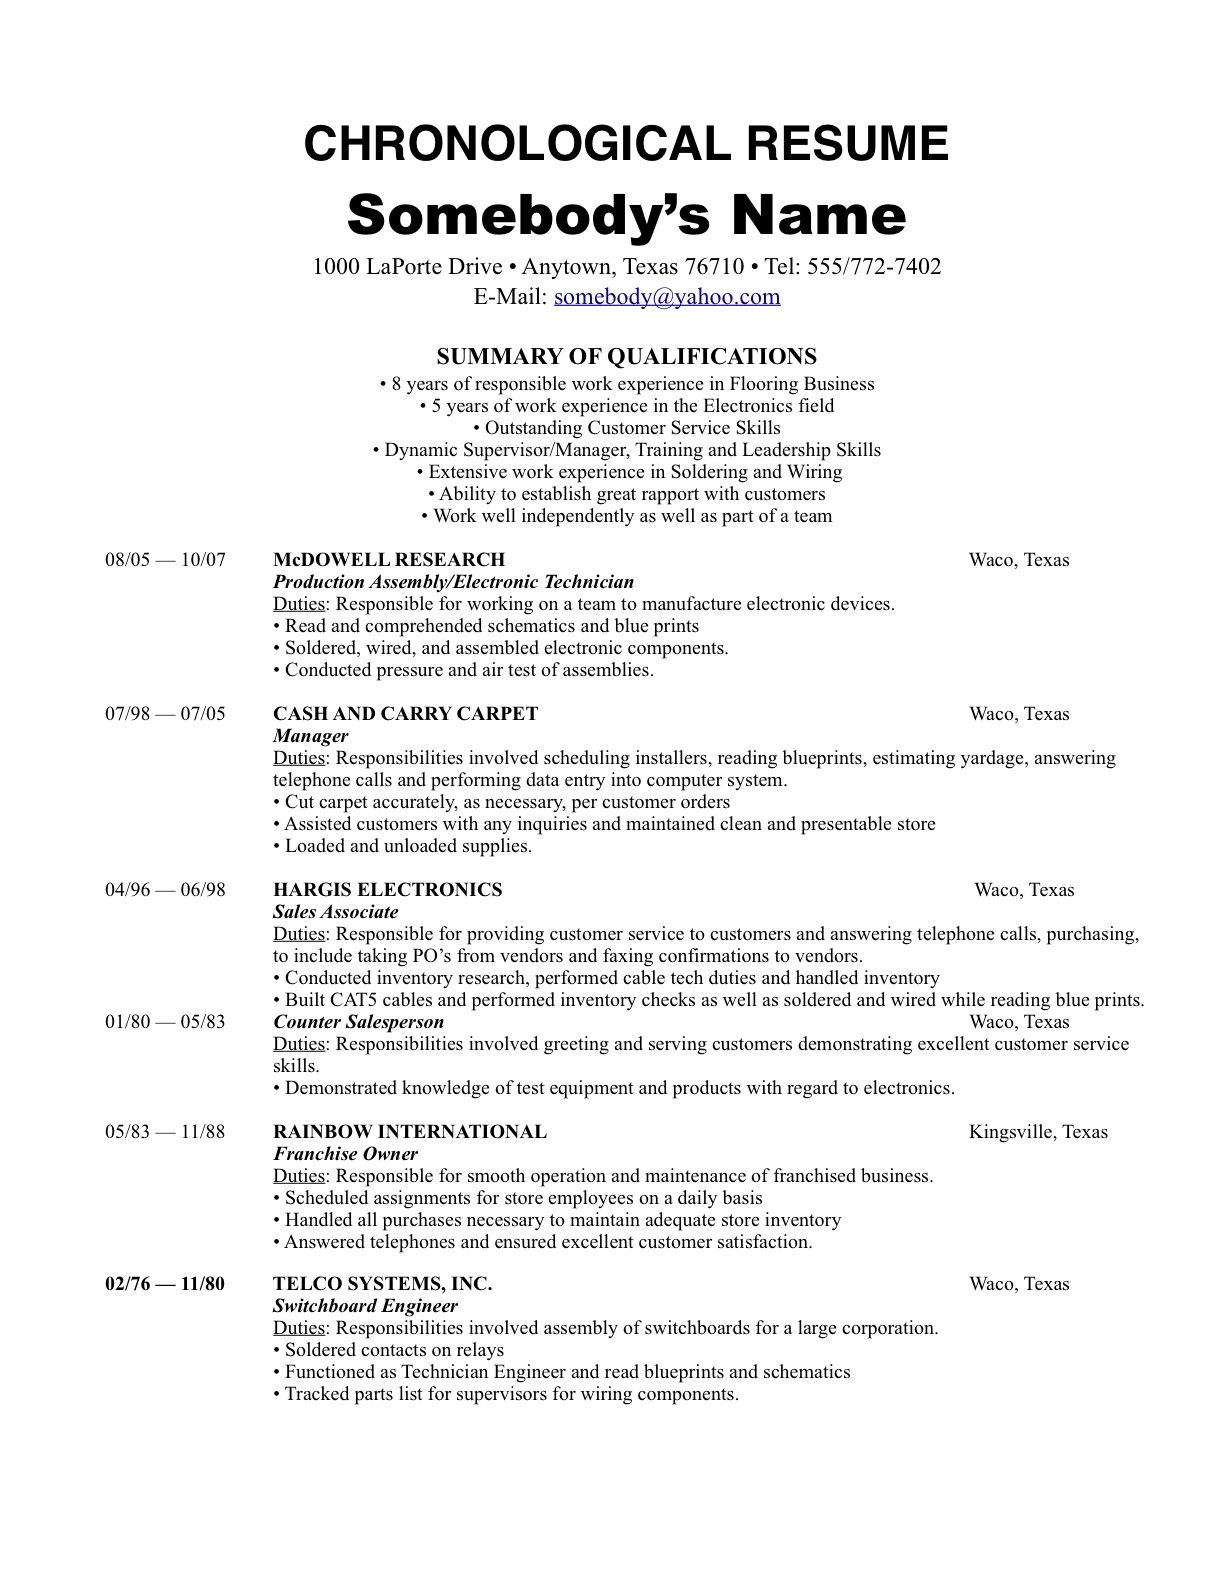 chronological order resume example dc0364f86 the most reverse chronological order resume example dc0364f86 the most reverse chronological resume example